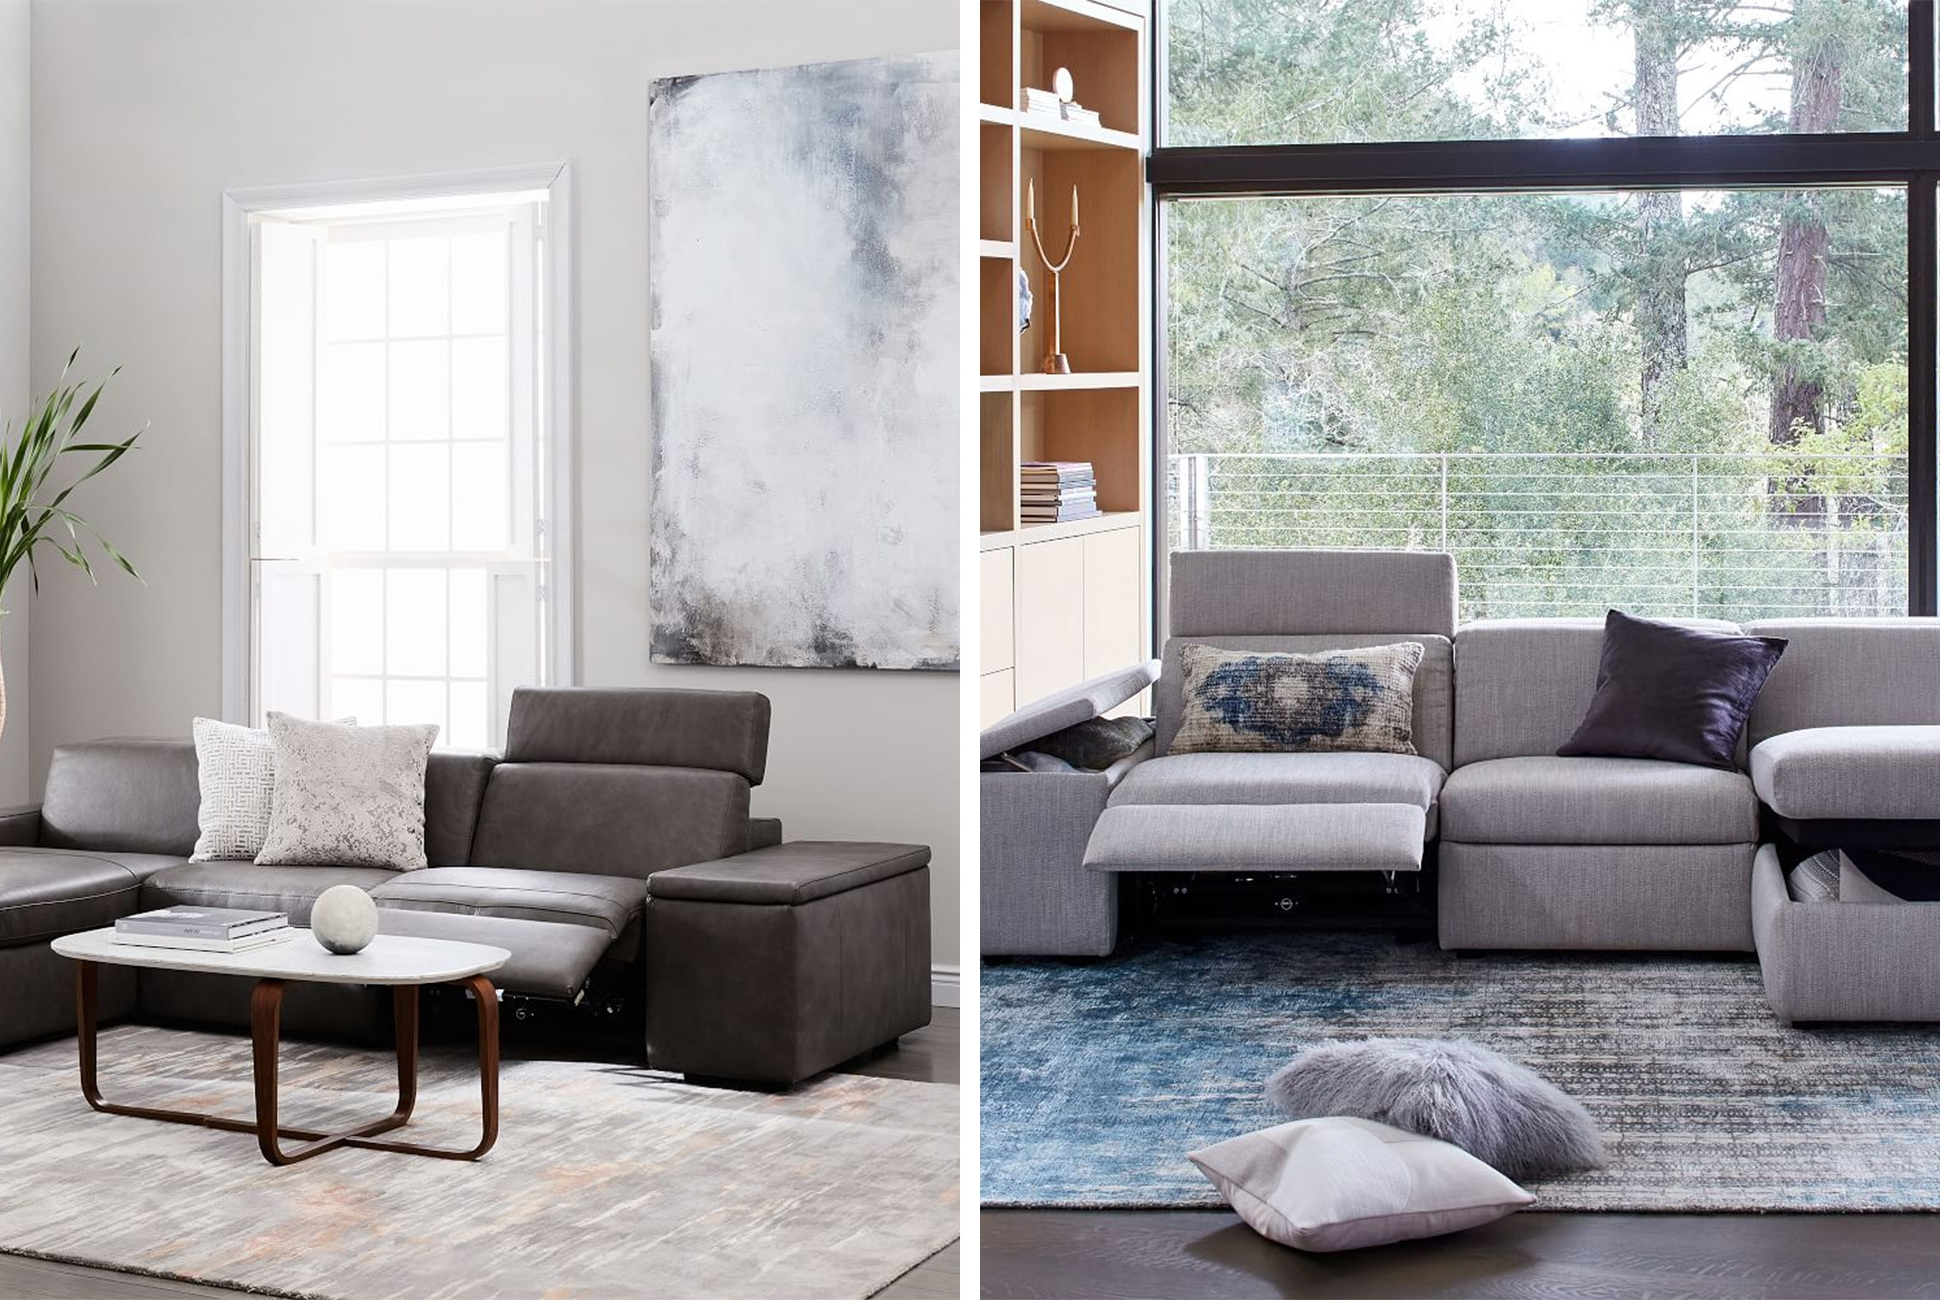 Favorite West Elm's New Enzo Series Features Recliners And Storage – Gear Within West Elm Sectional Sofas (View 3 of 20)